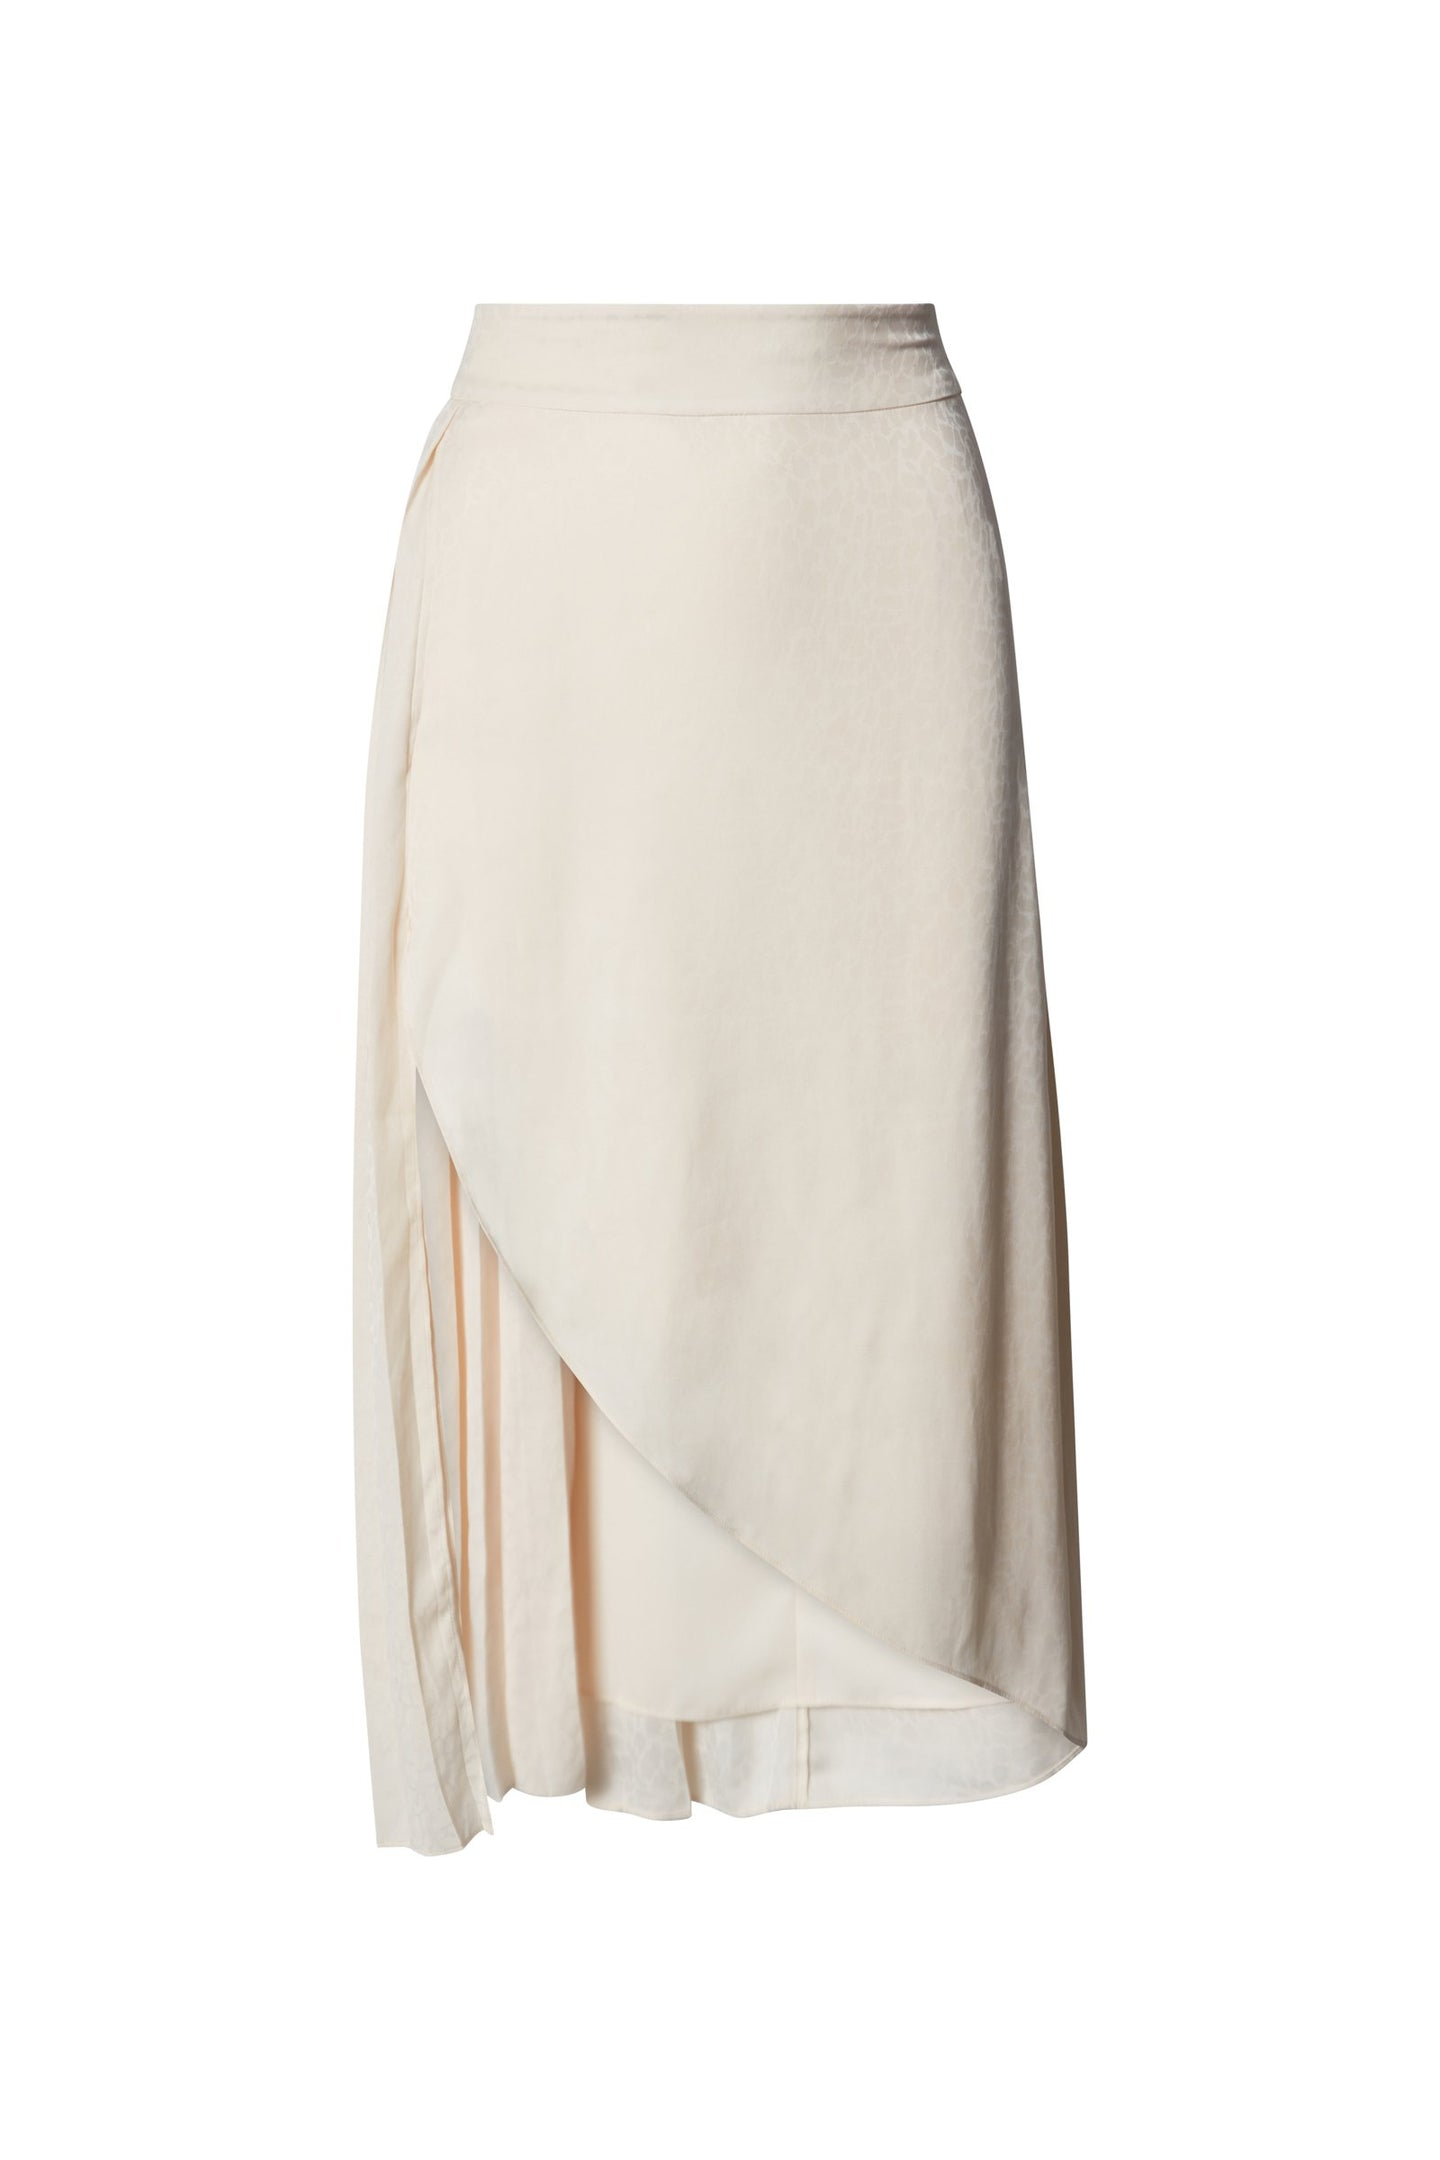 Cameron High Waist Midi Skirt in Vintage White Silky Animal Jacquard with Pleat Inset